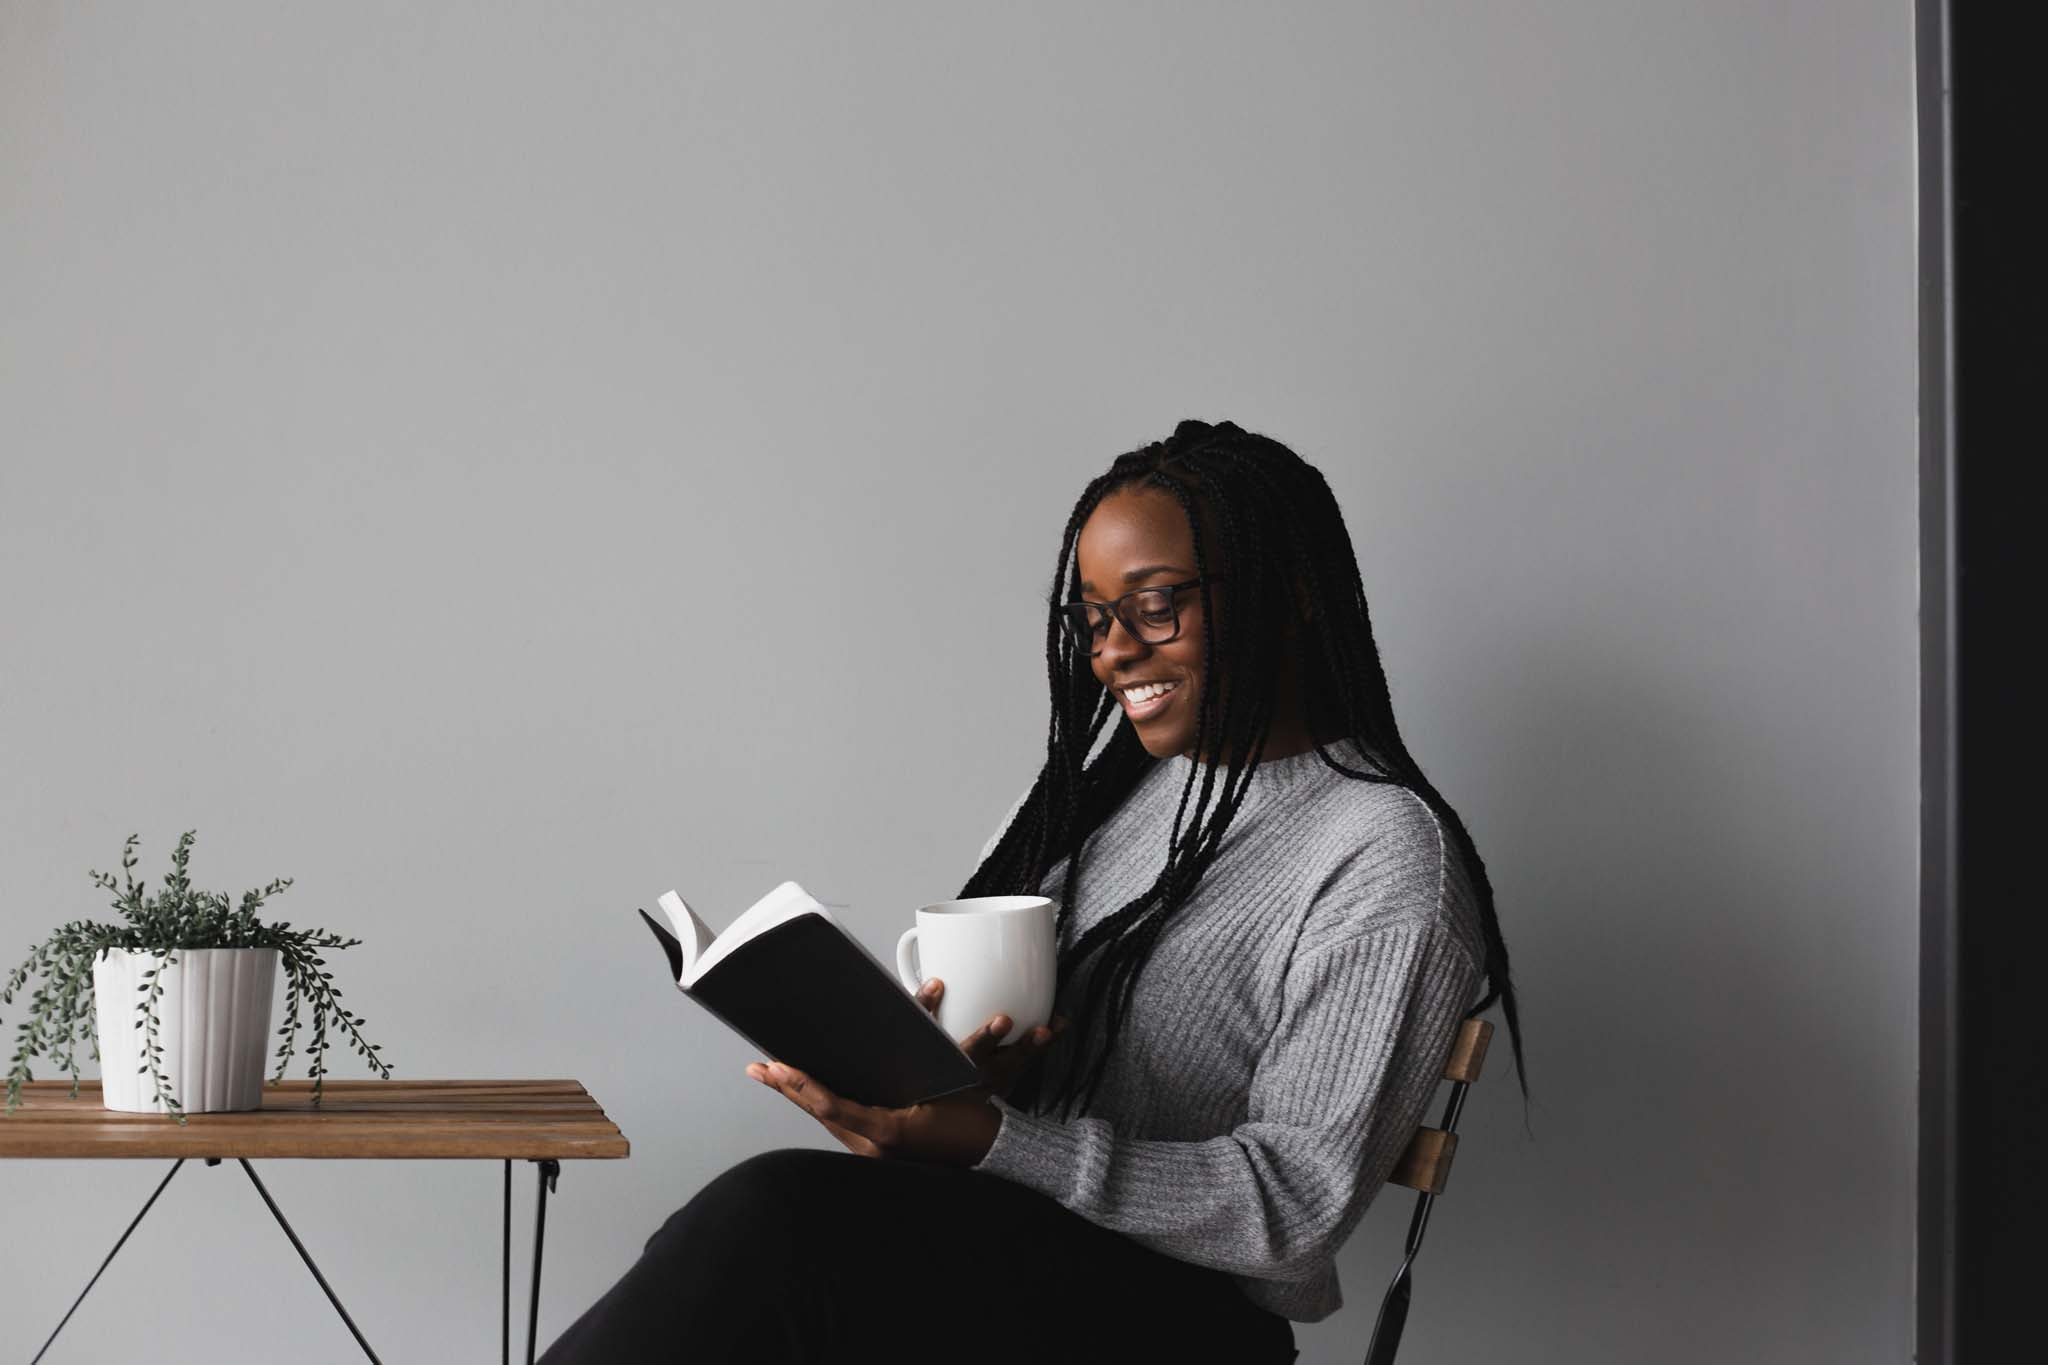 Woman sitting and smiling as she reads finding-happiness quotes.